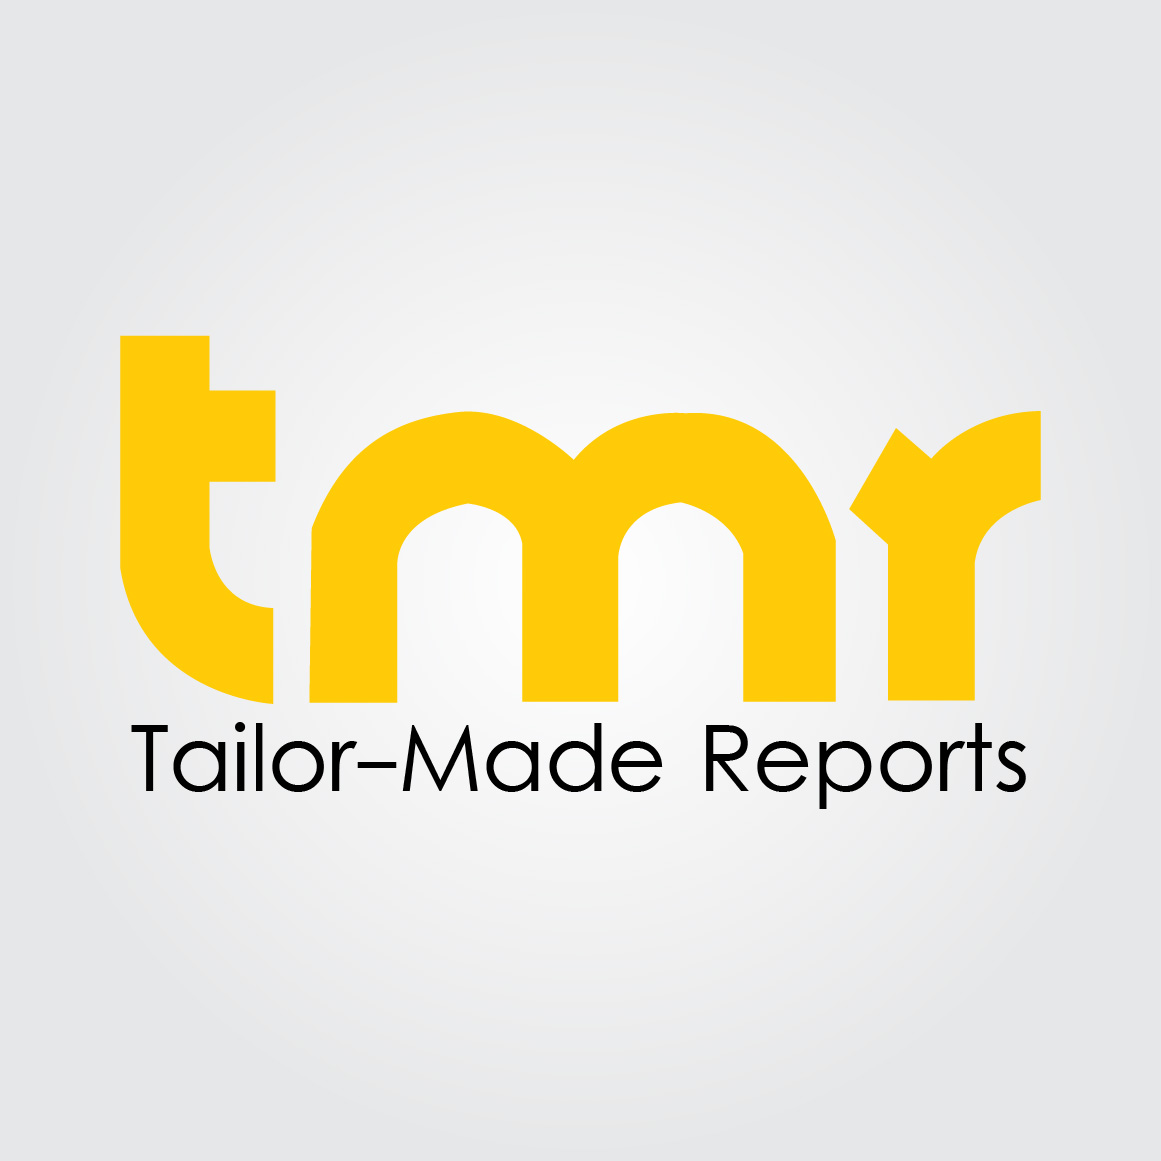 Collaboration Tools Market COVID-19 Impact Analysis Report